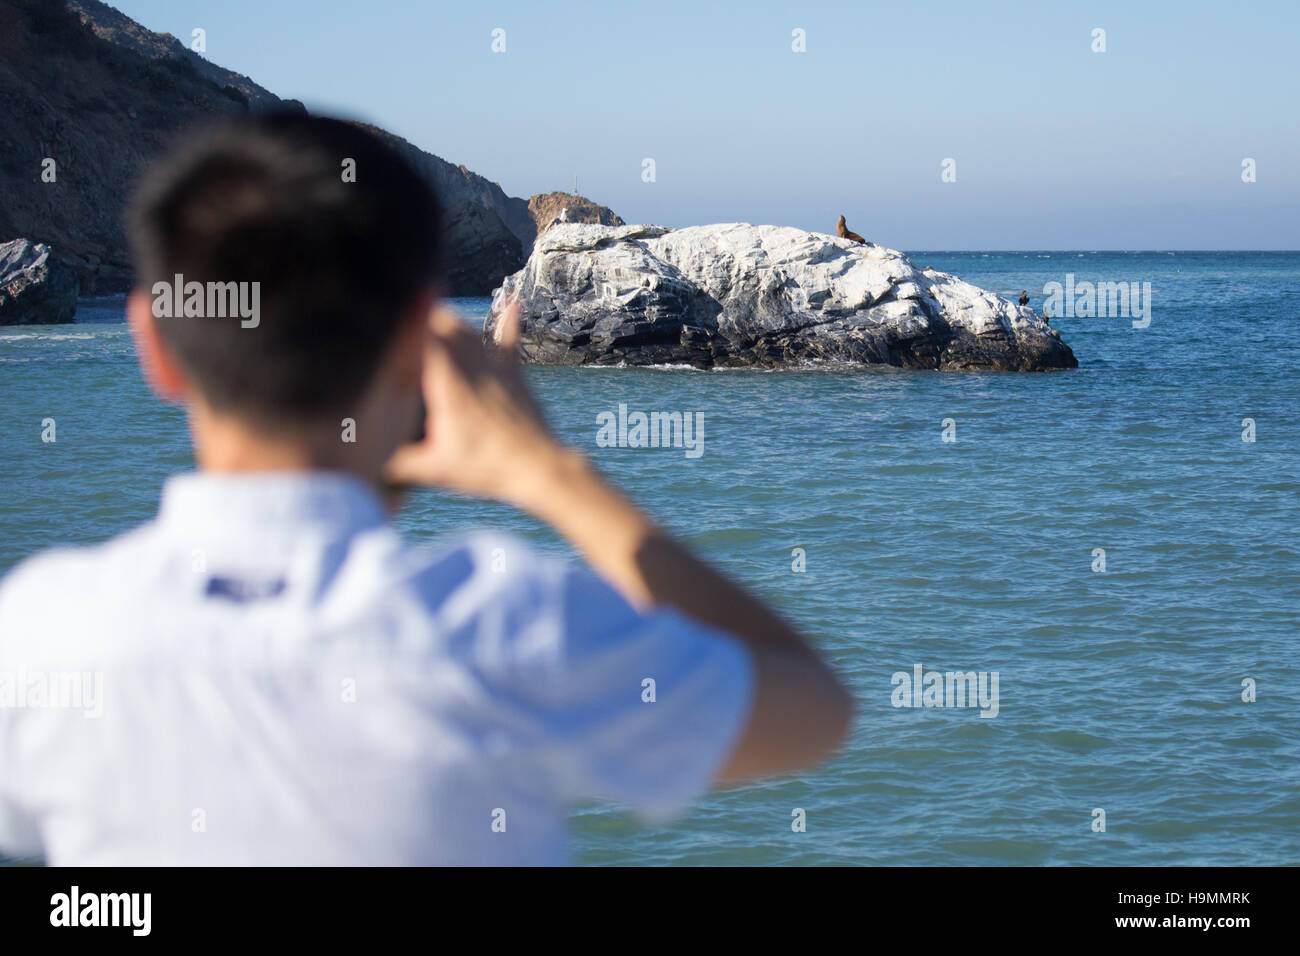 Asian tourist taking a picture on his iPhone, Catalina Island, California - Stock Image